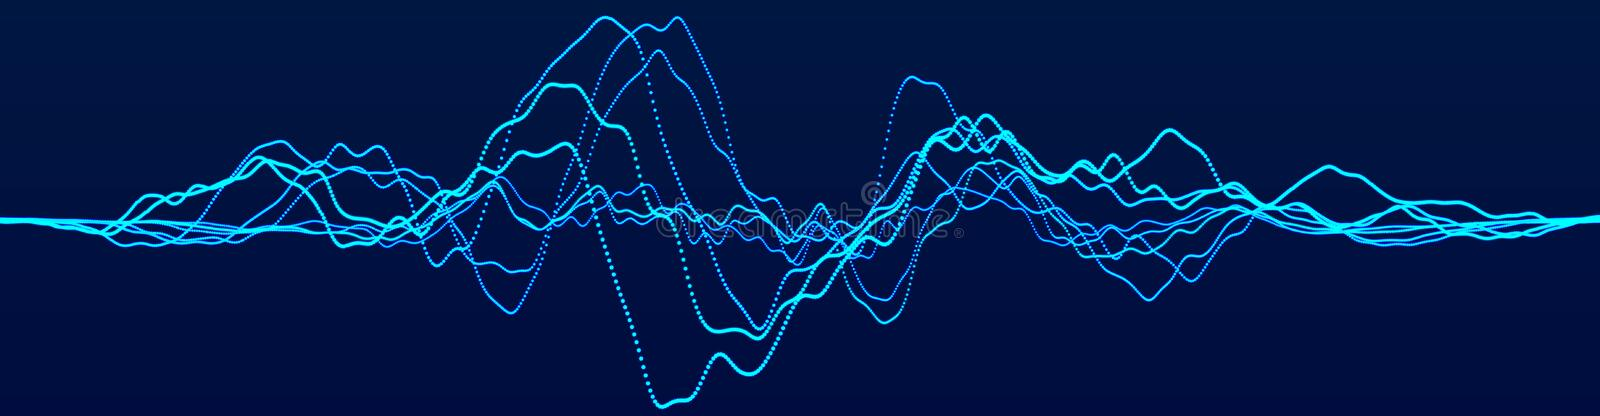 Abstract background with dynamic waves. Big data visualization. Technology equalizer for music. 3d rendering royalty free illustration